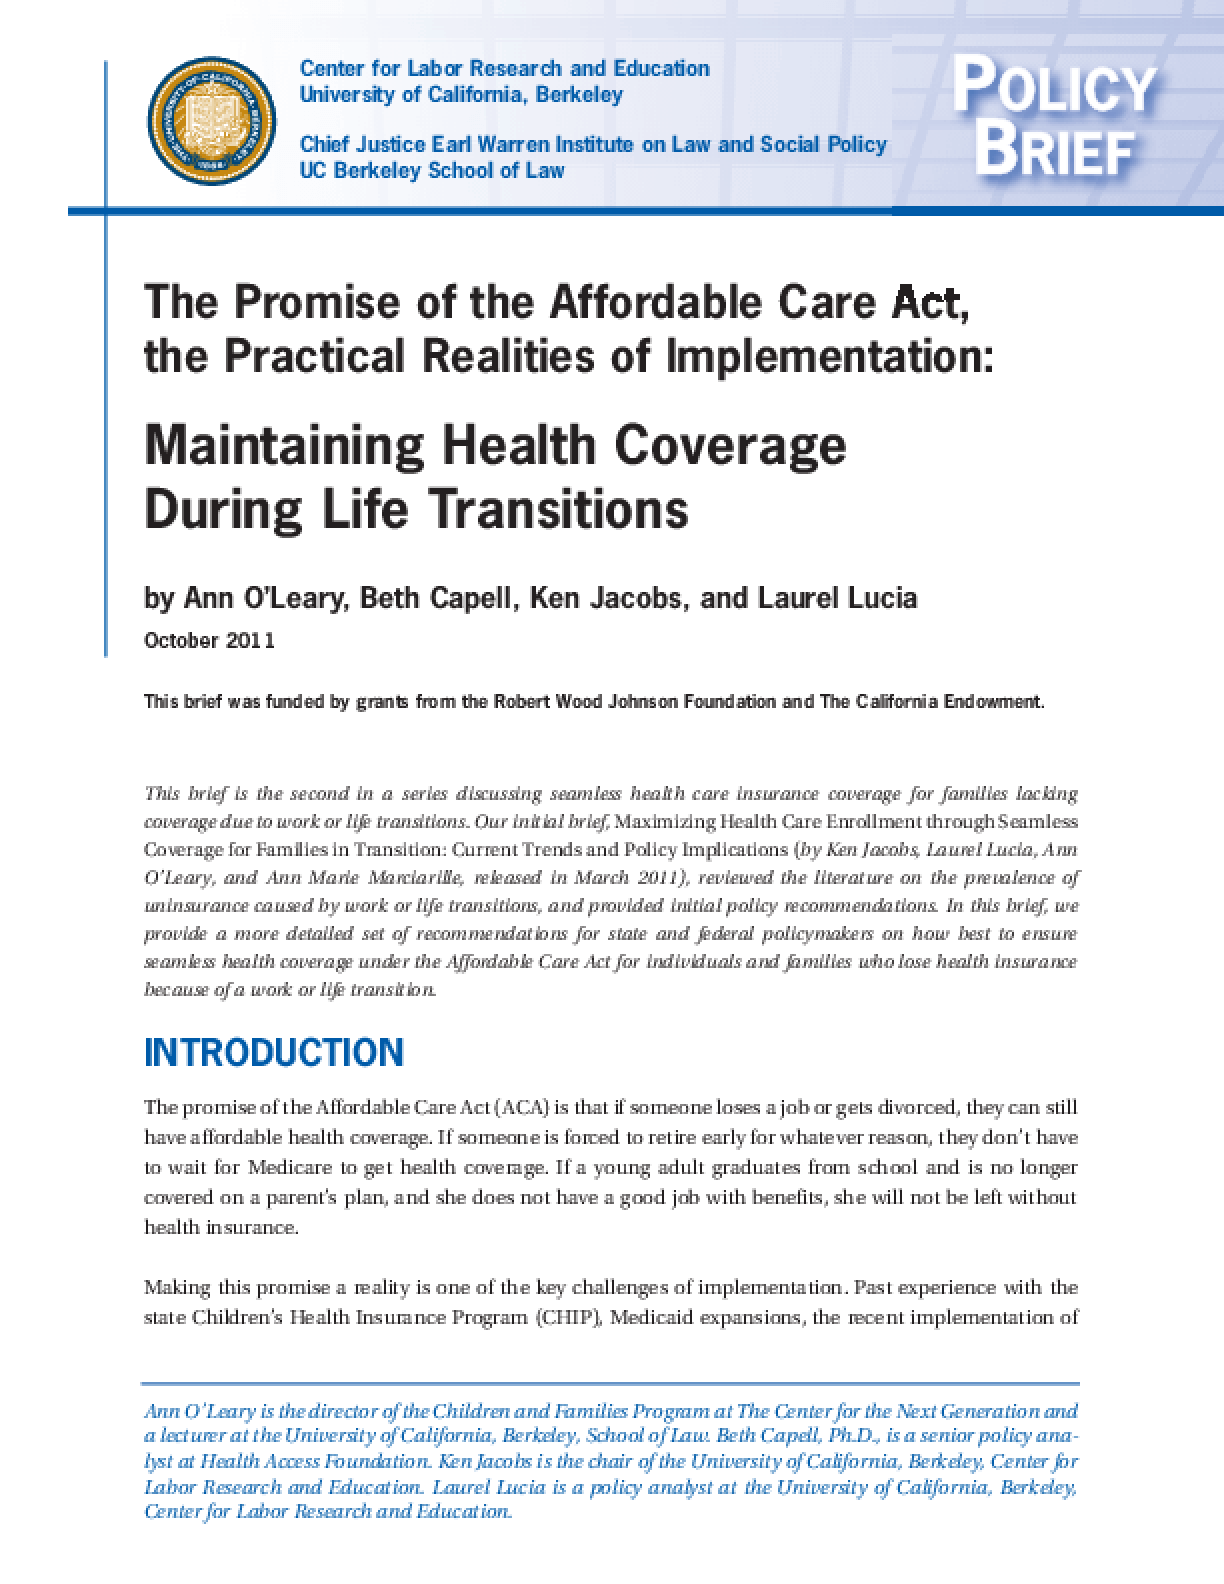 The Promise of the Affordable Care Act, the Practical Realities of Implementation: Maintaining Health Coverage During Life Transitions